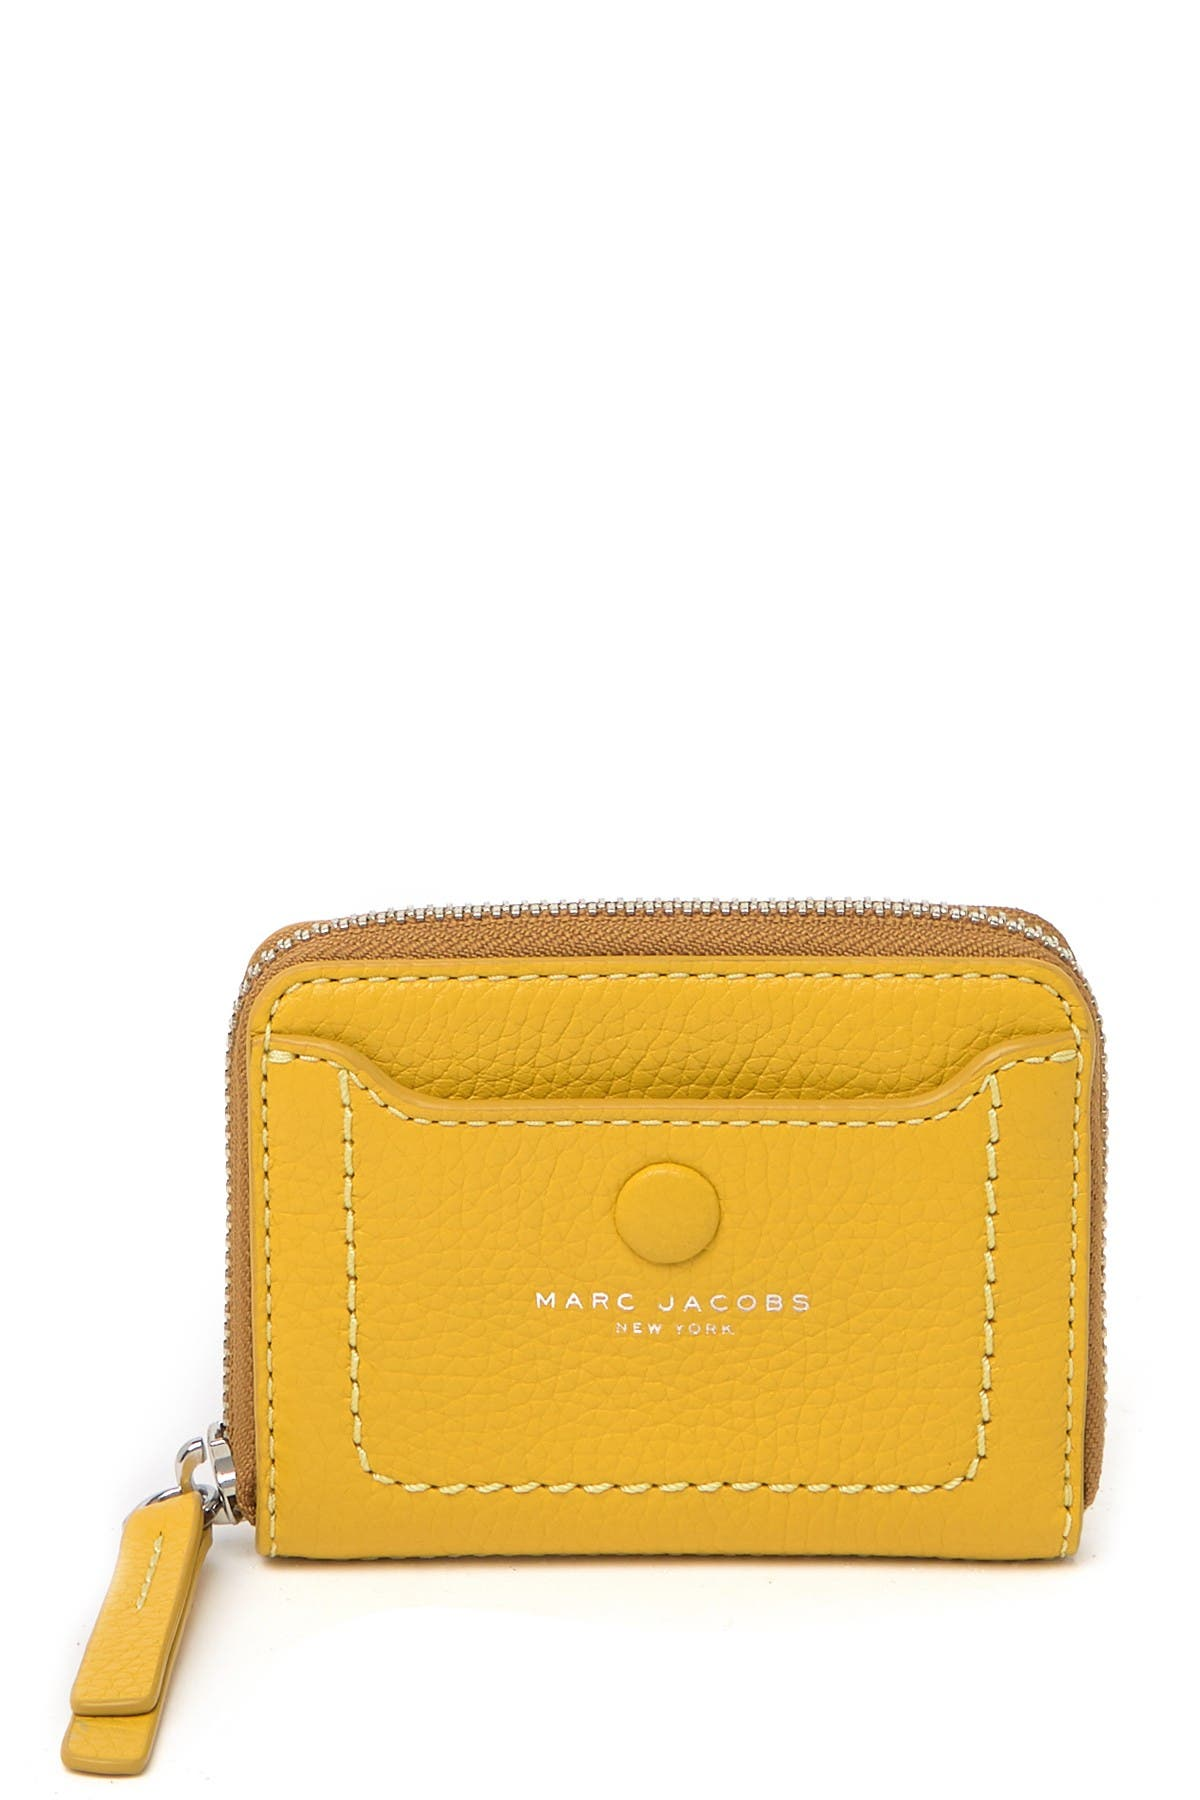 Image of Marc Jacobs Empire City Leather Zip Wallet